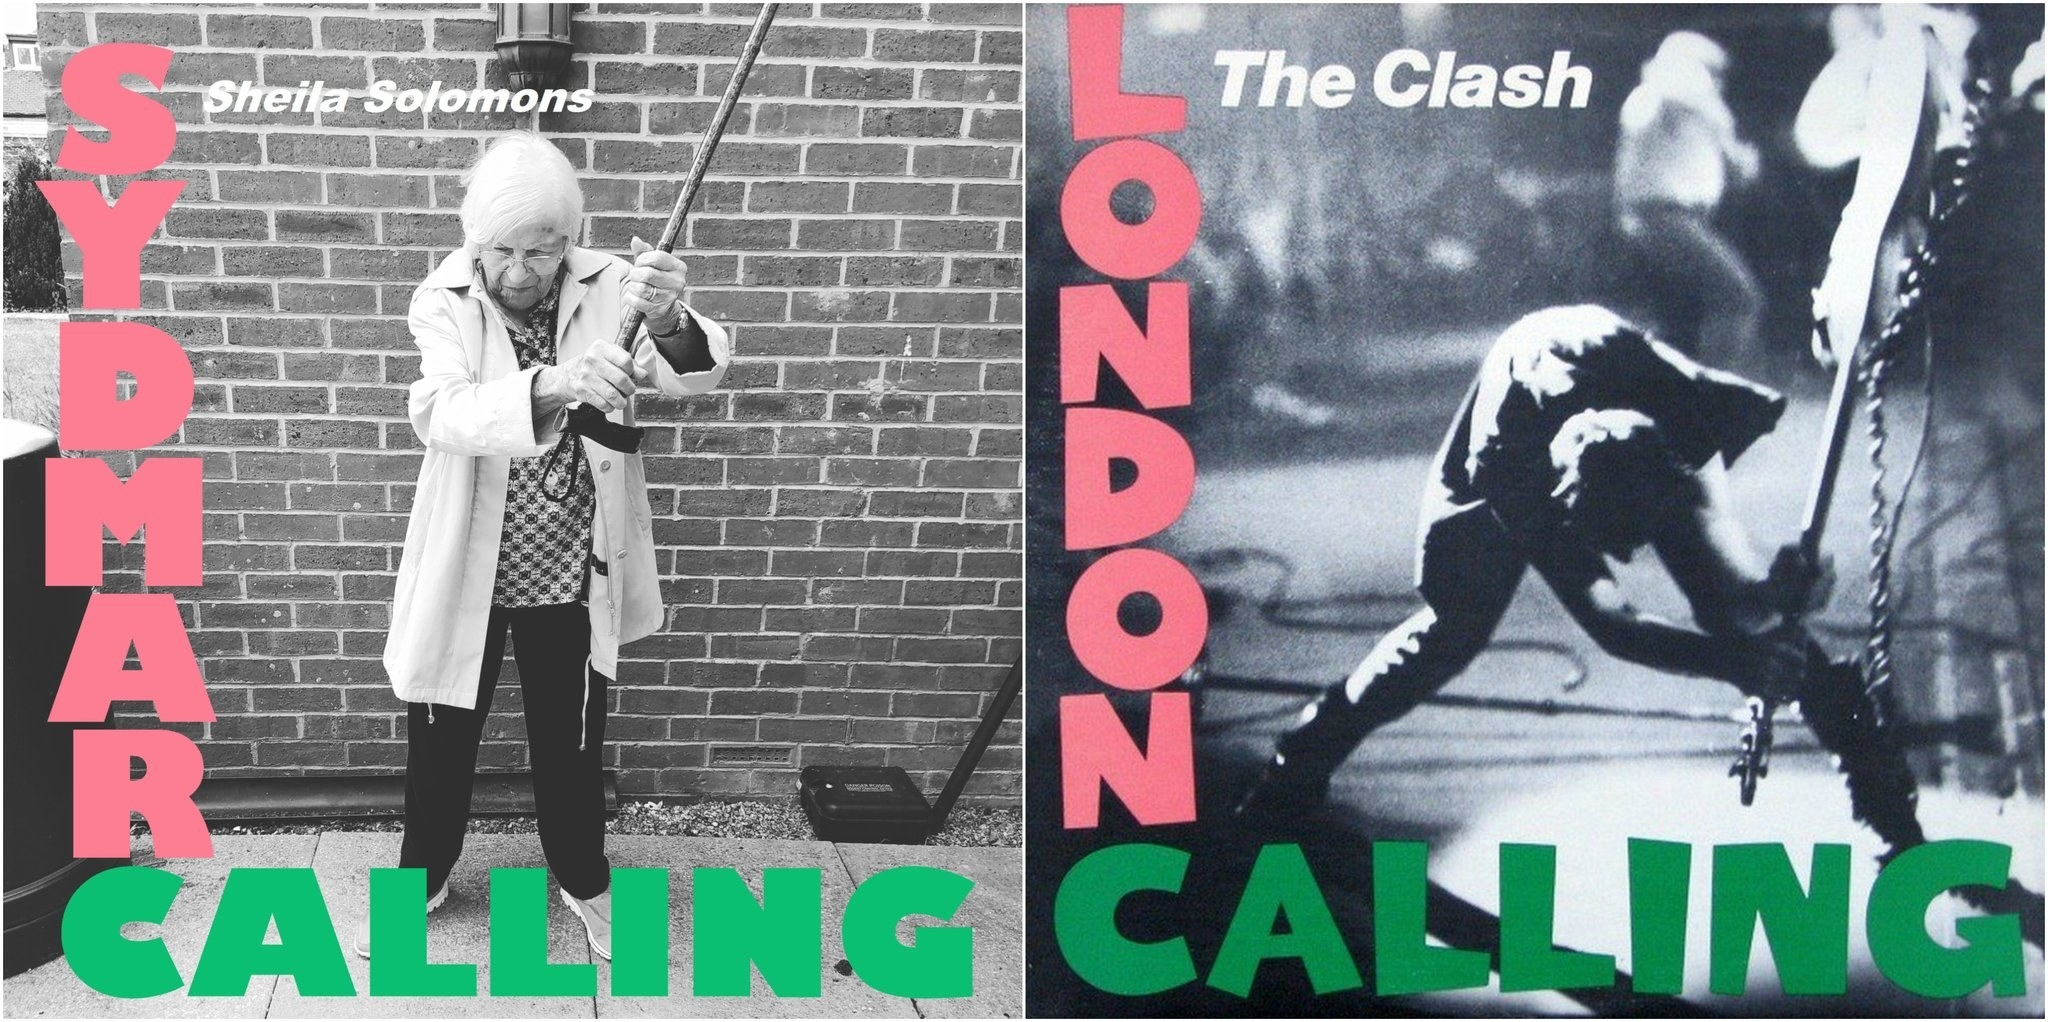 An elderly woman recreating The Clash's London Calling album cover